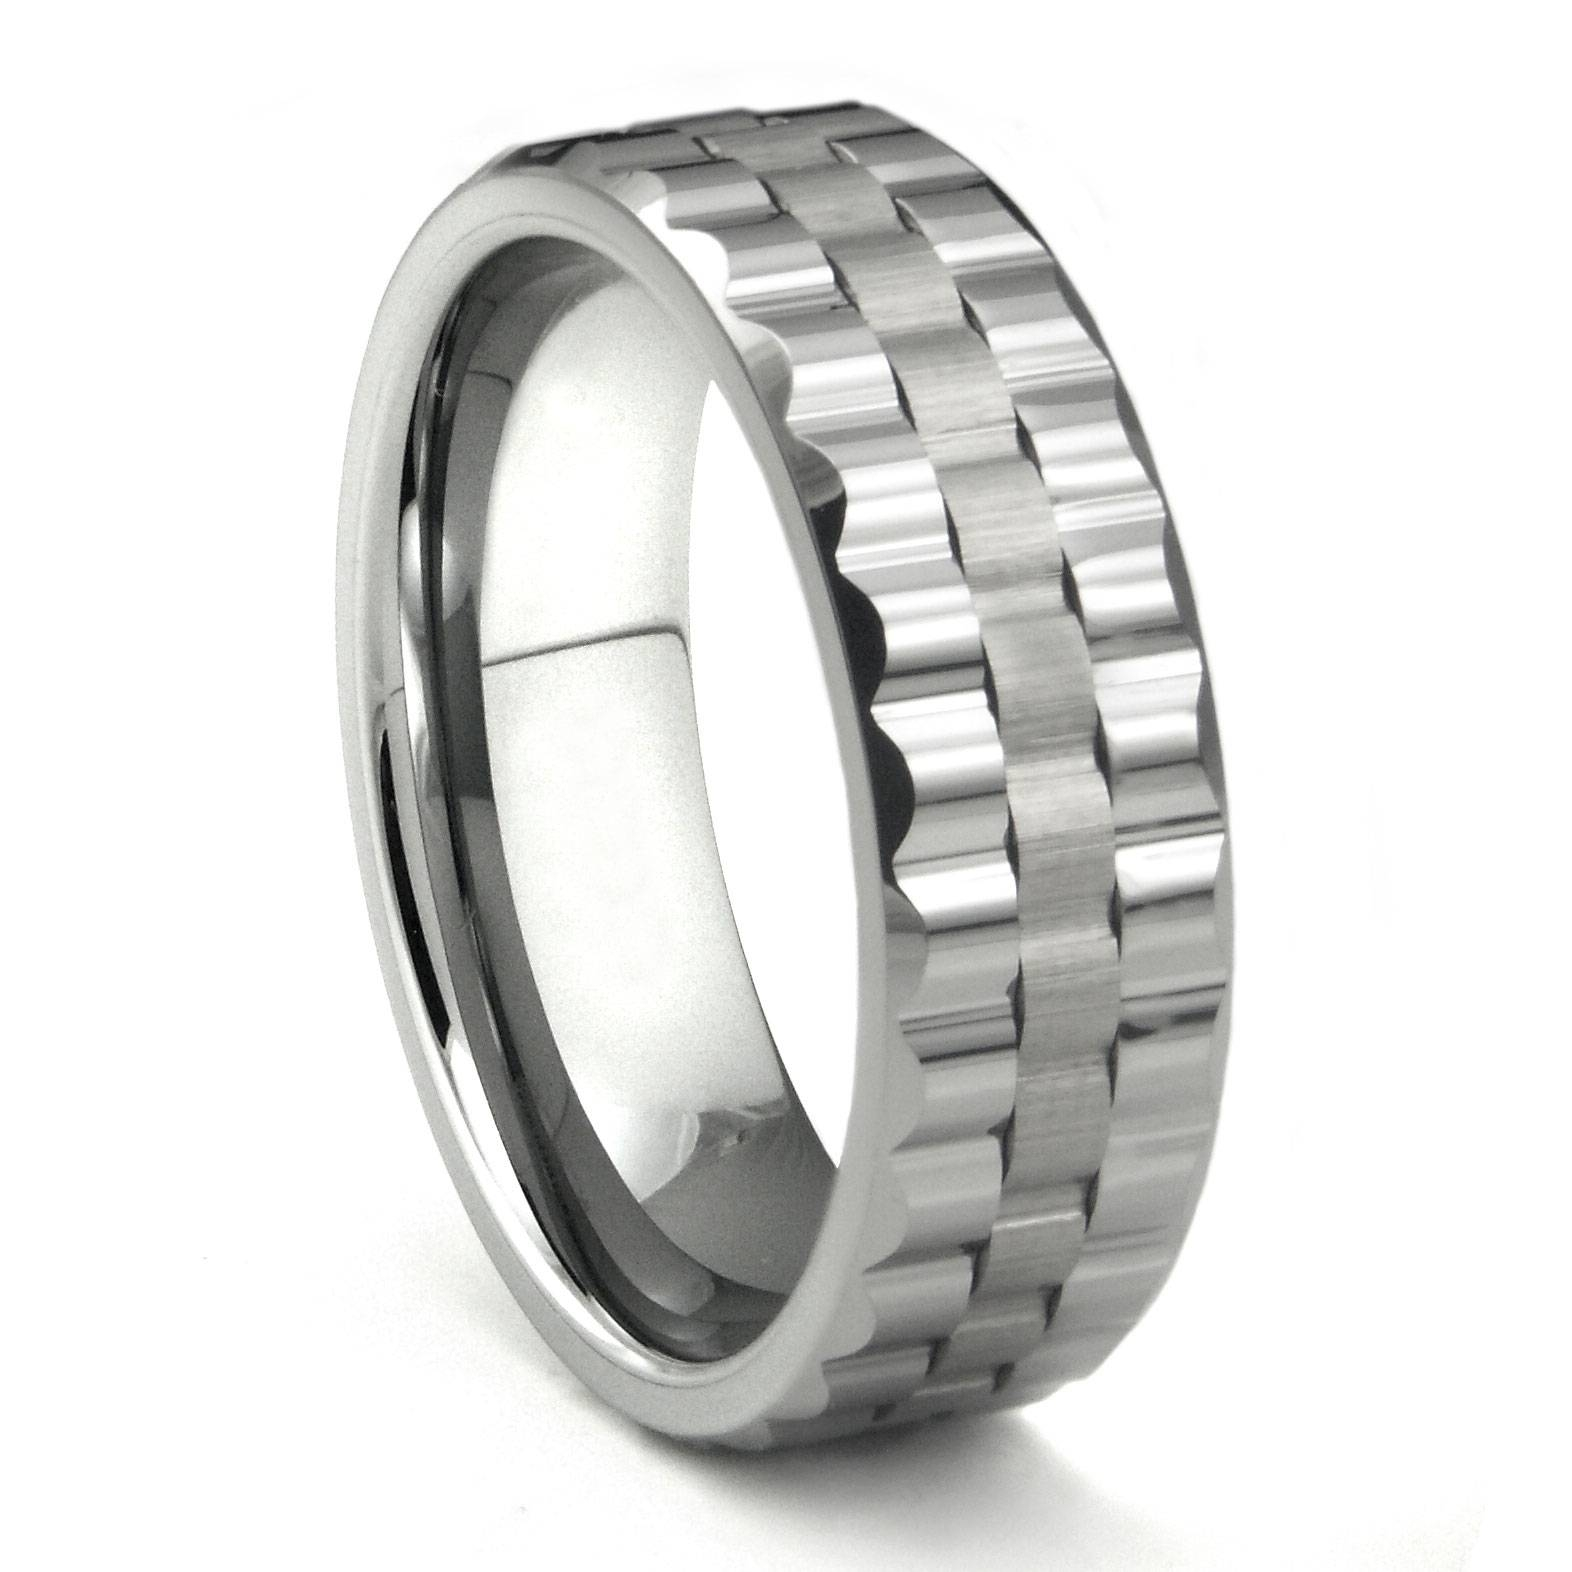 Tungsten Carbide Watchband Design Wedding Band Ring With Regard To Mens 10Mm Tungsten Wedding Bands (View 12 of 15)